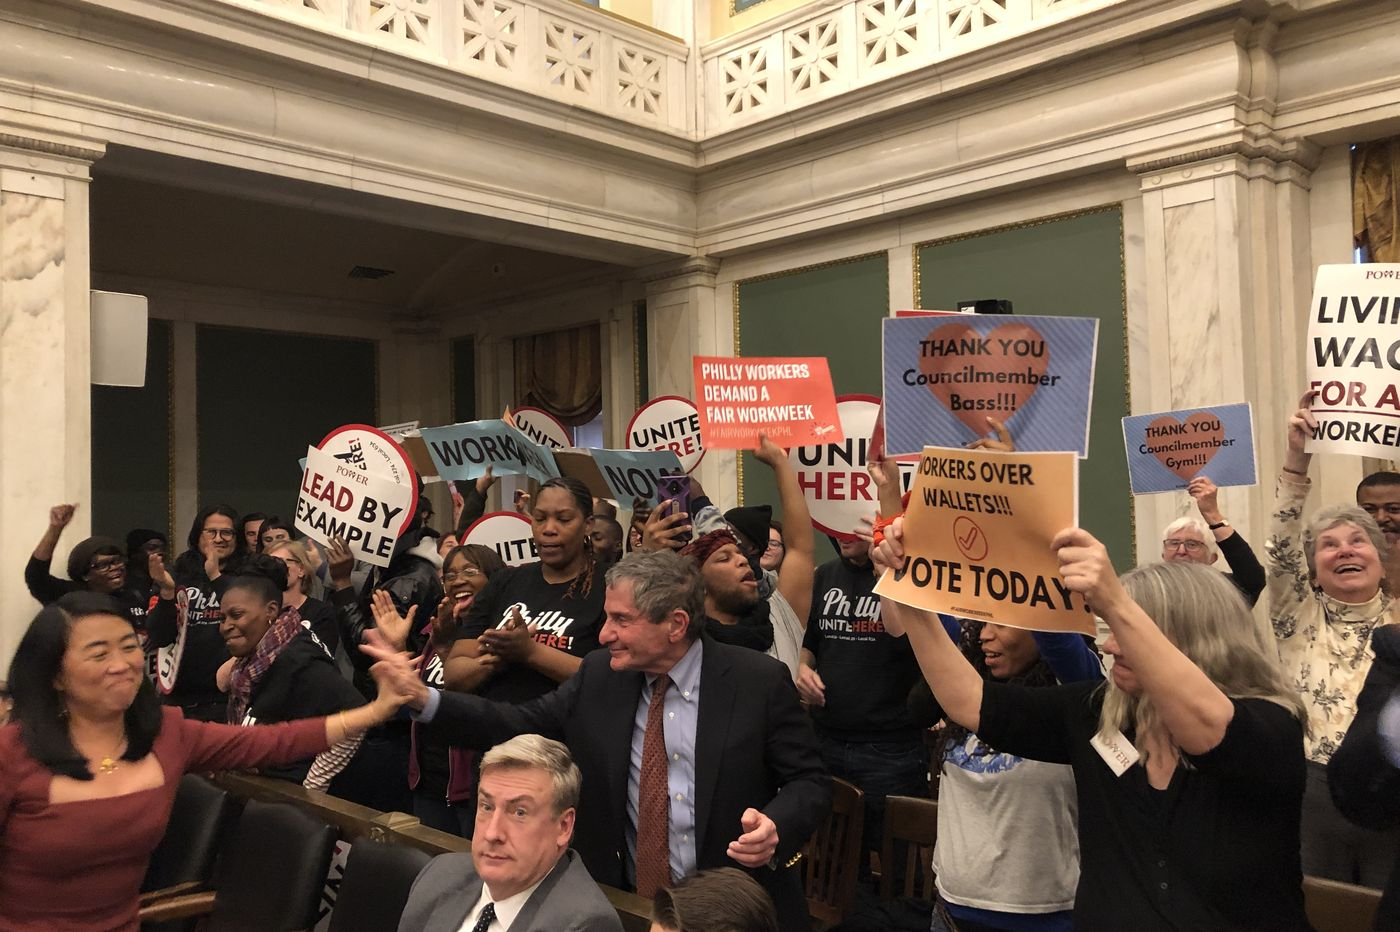 Council approves bills for 'Fair Workweek' and $15/hr. wage hike